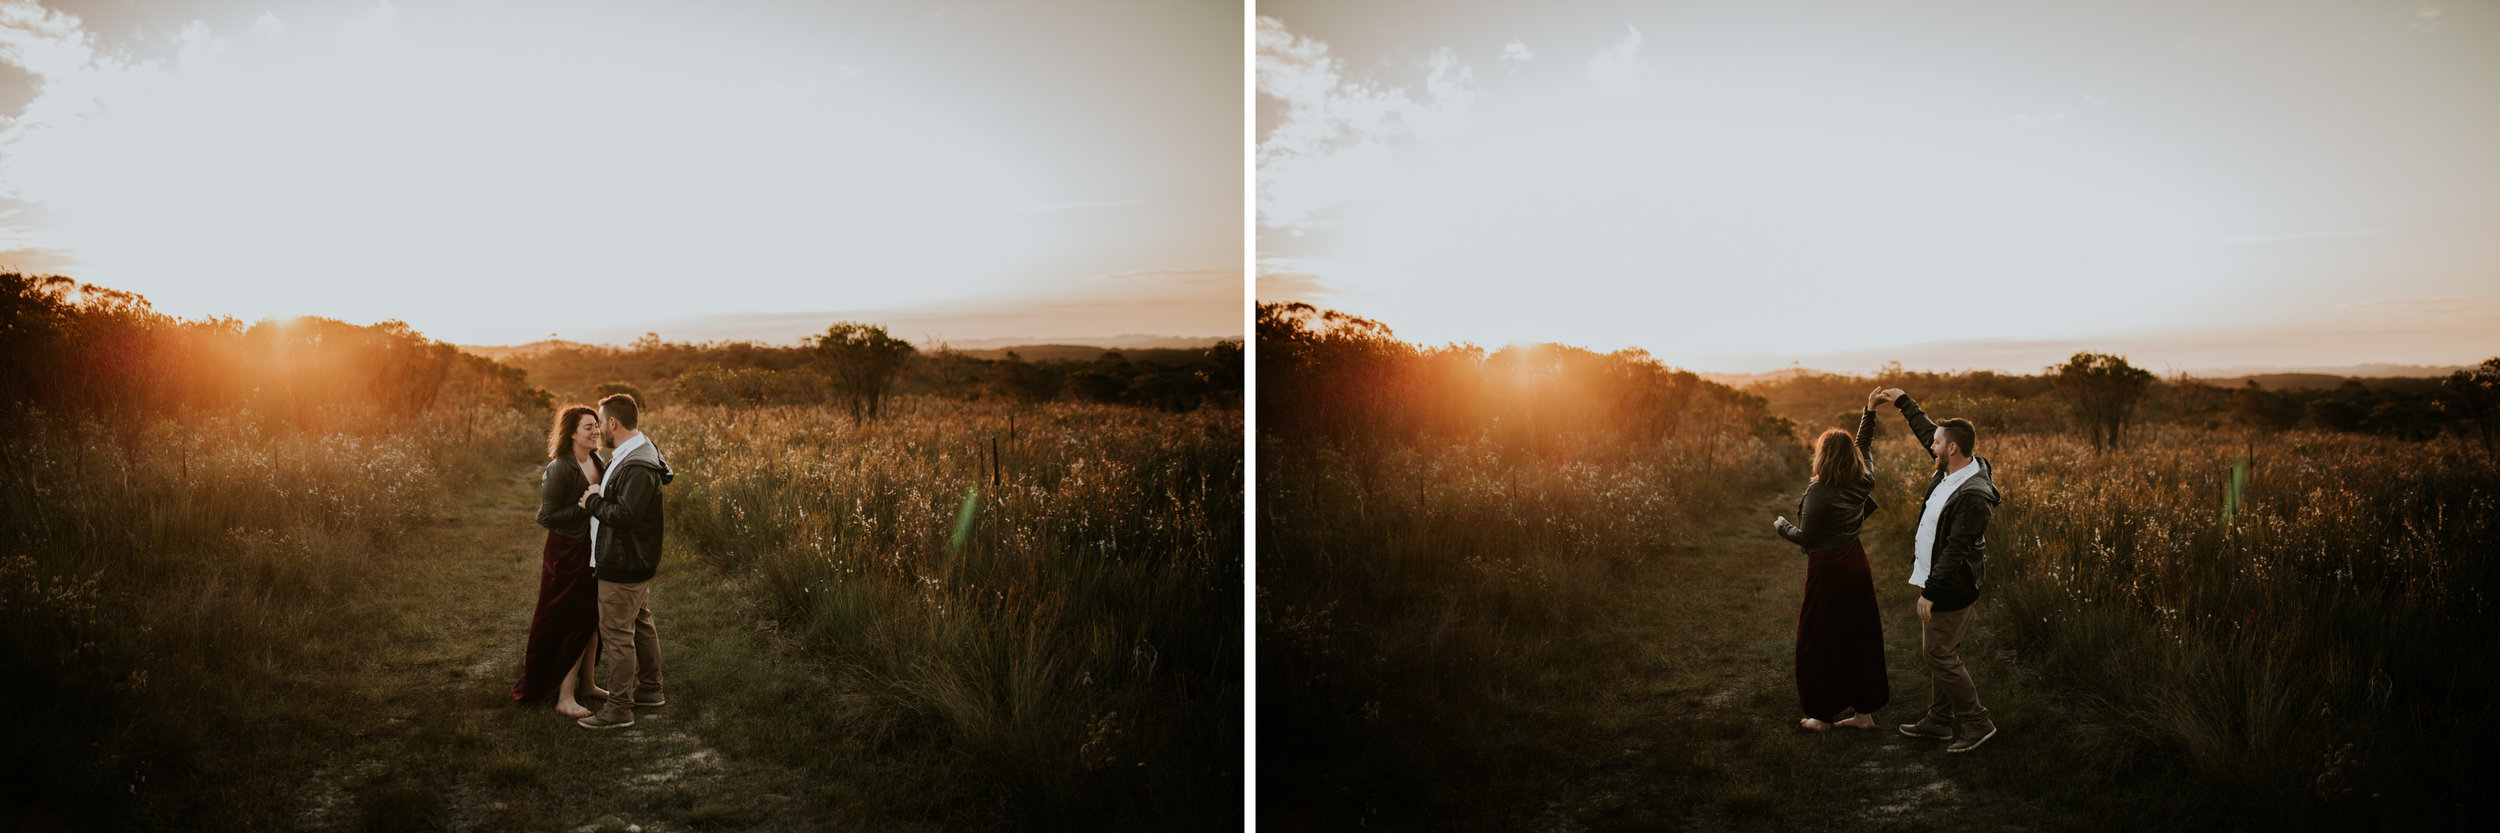 Sarah+Grant+Anniversary+Couple+session+Southern+highlands-12.jpg